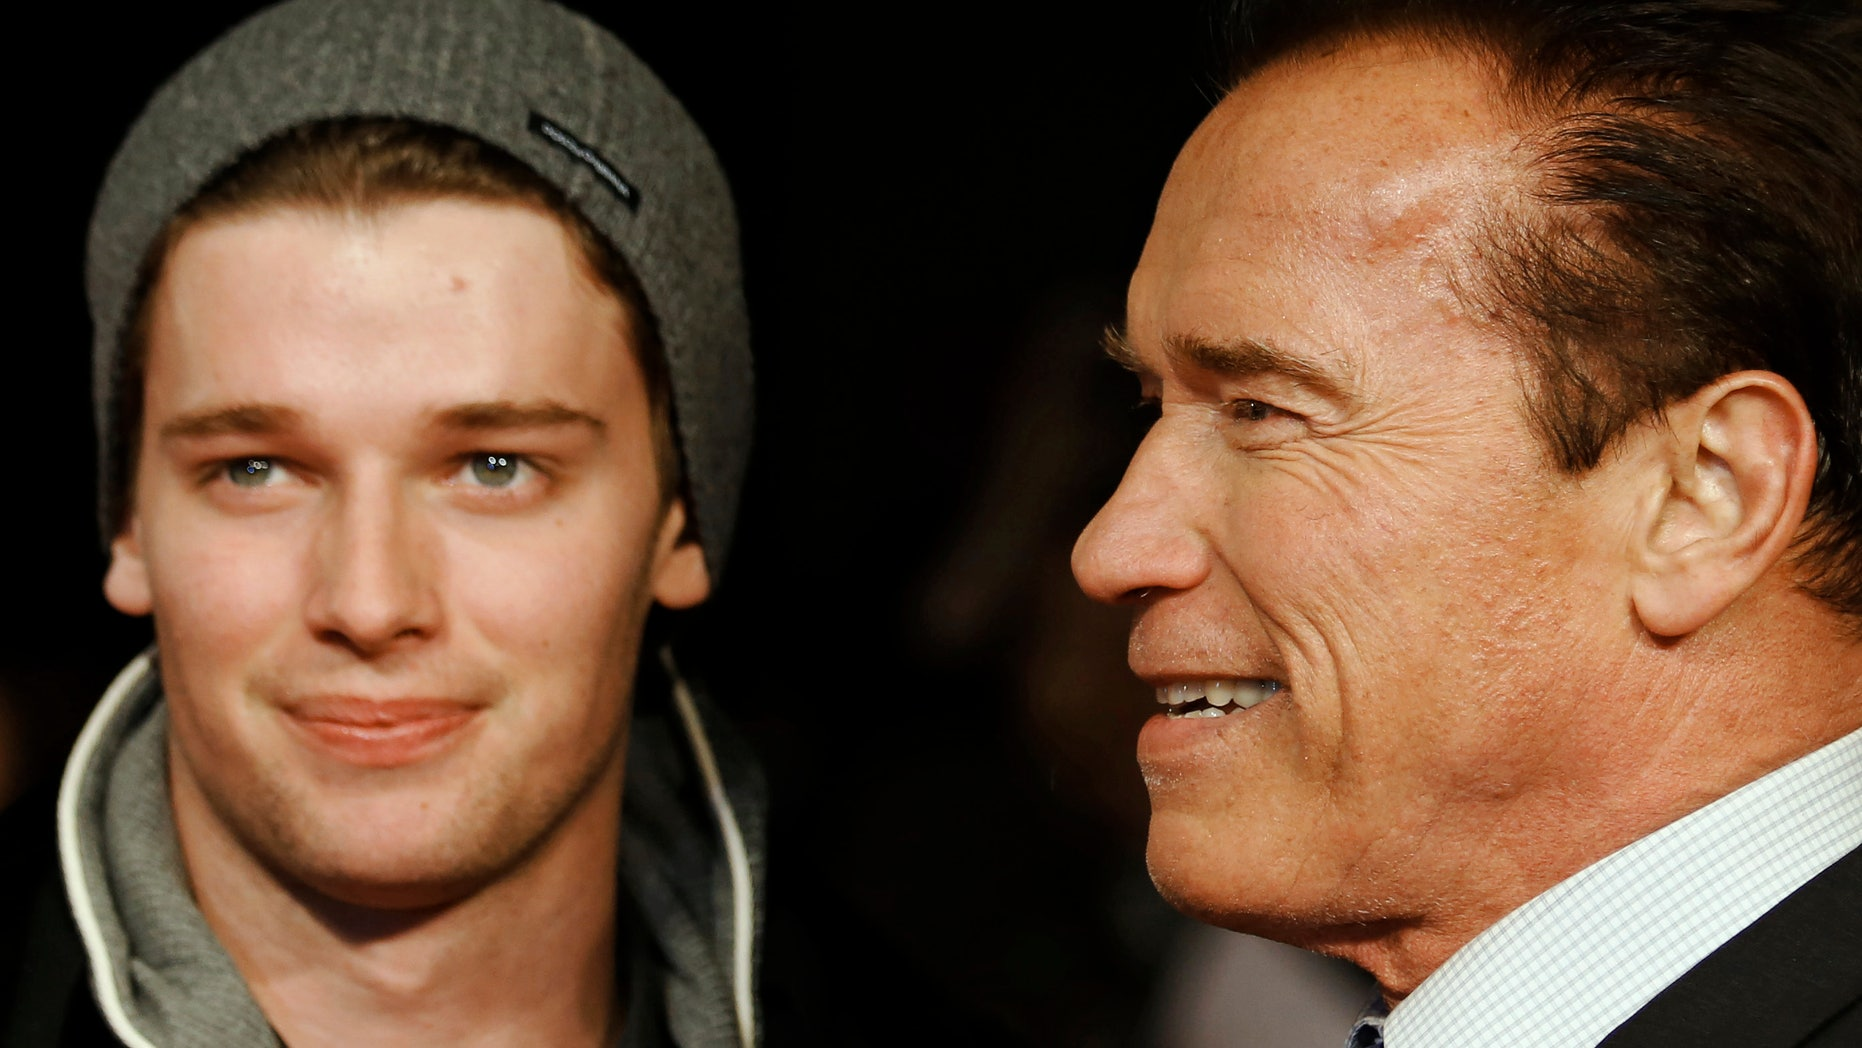 """January 22, 2013. Actor and former California governor Arnold Schwarzenegger (R) poses with his son Patrick as they arrive for the British premiere of """"The Last Stand"""" at Leicester Square in London."""